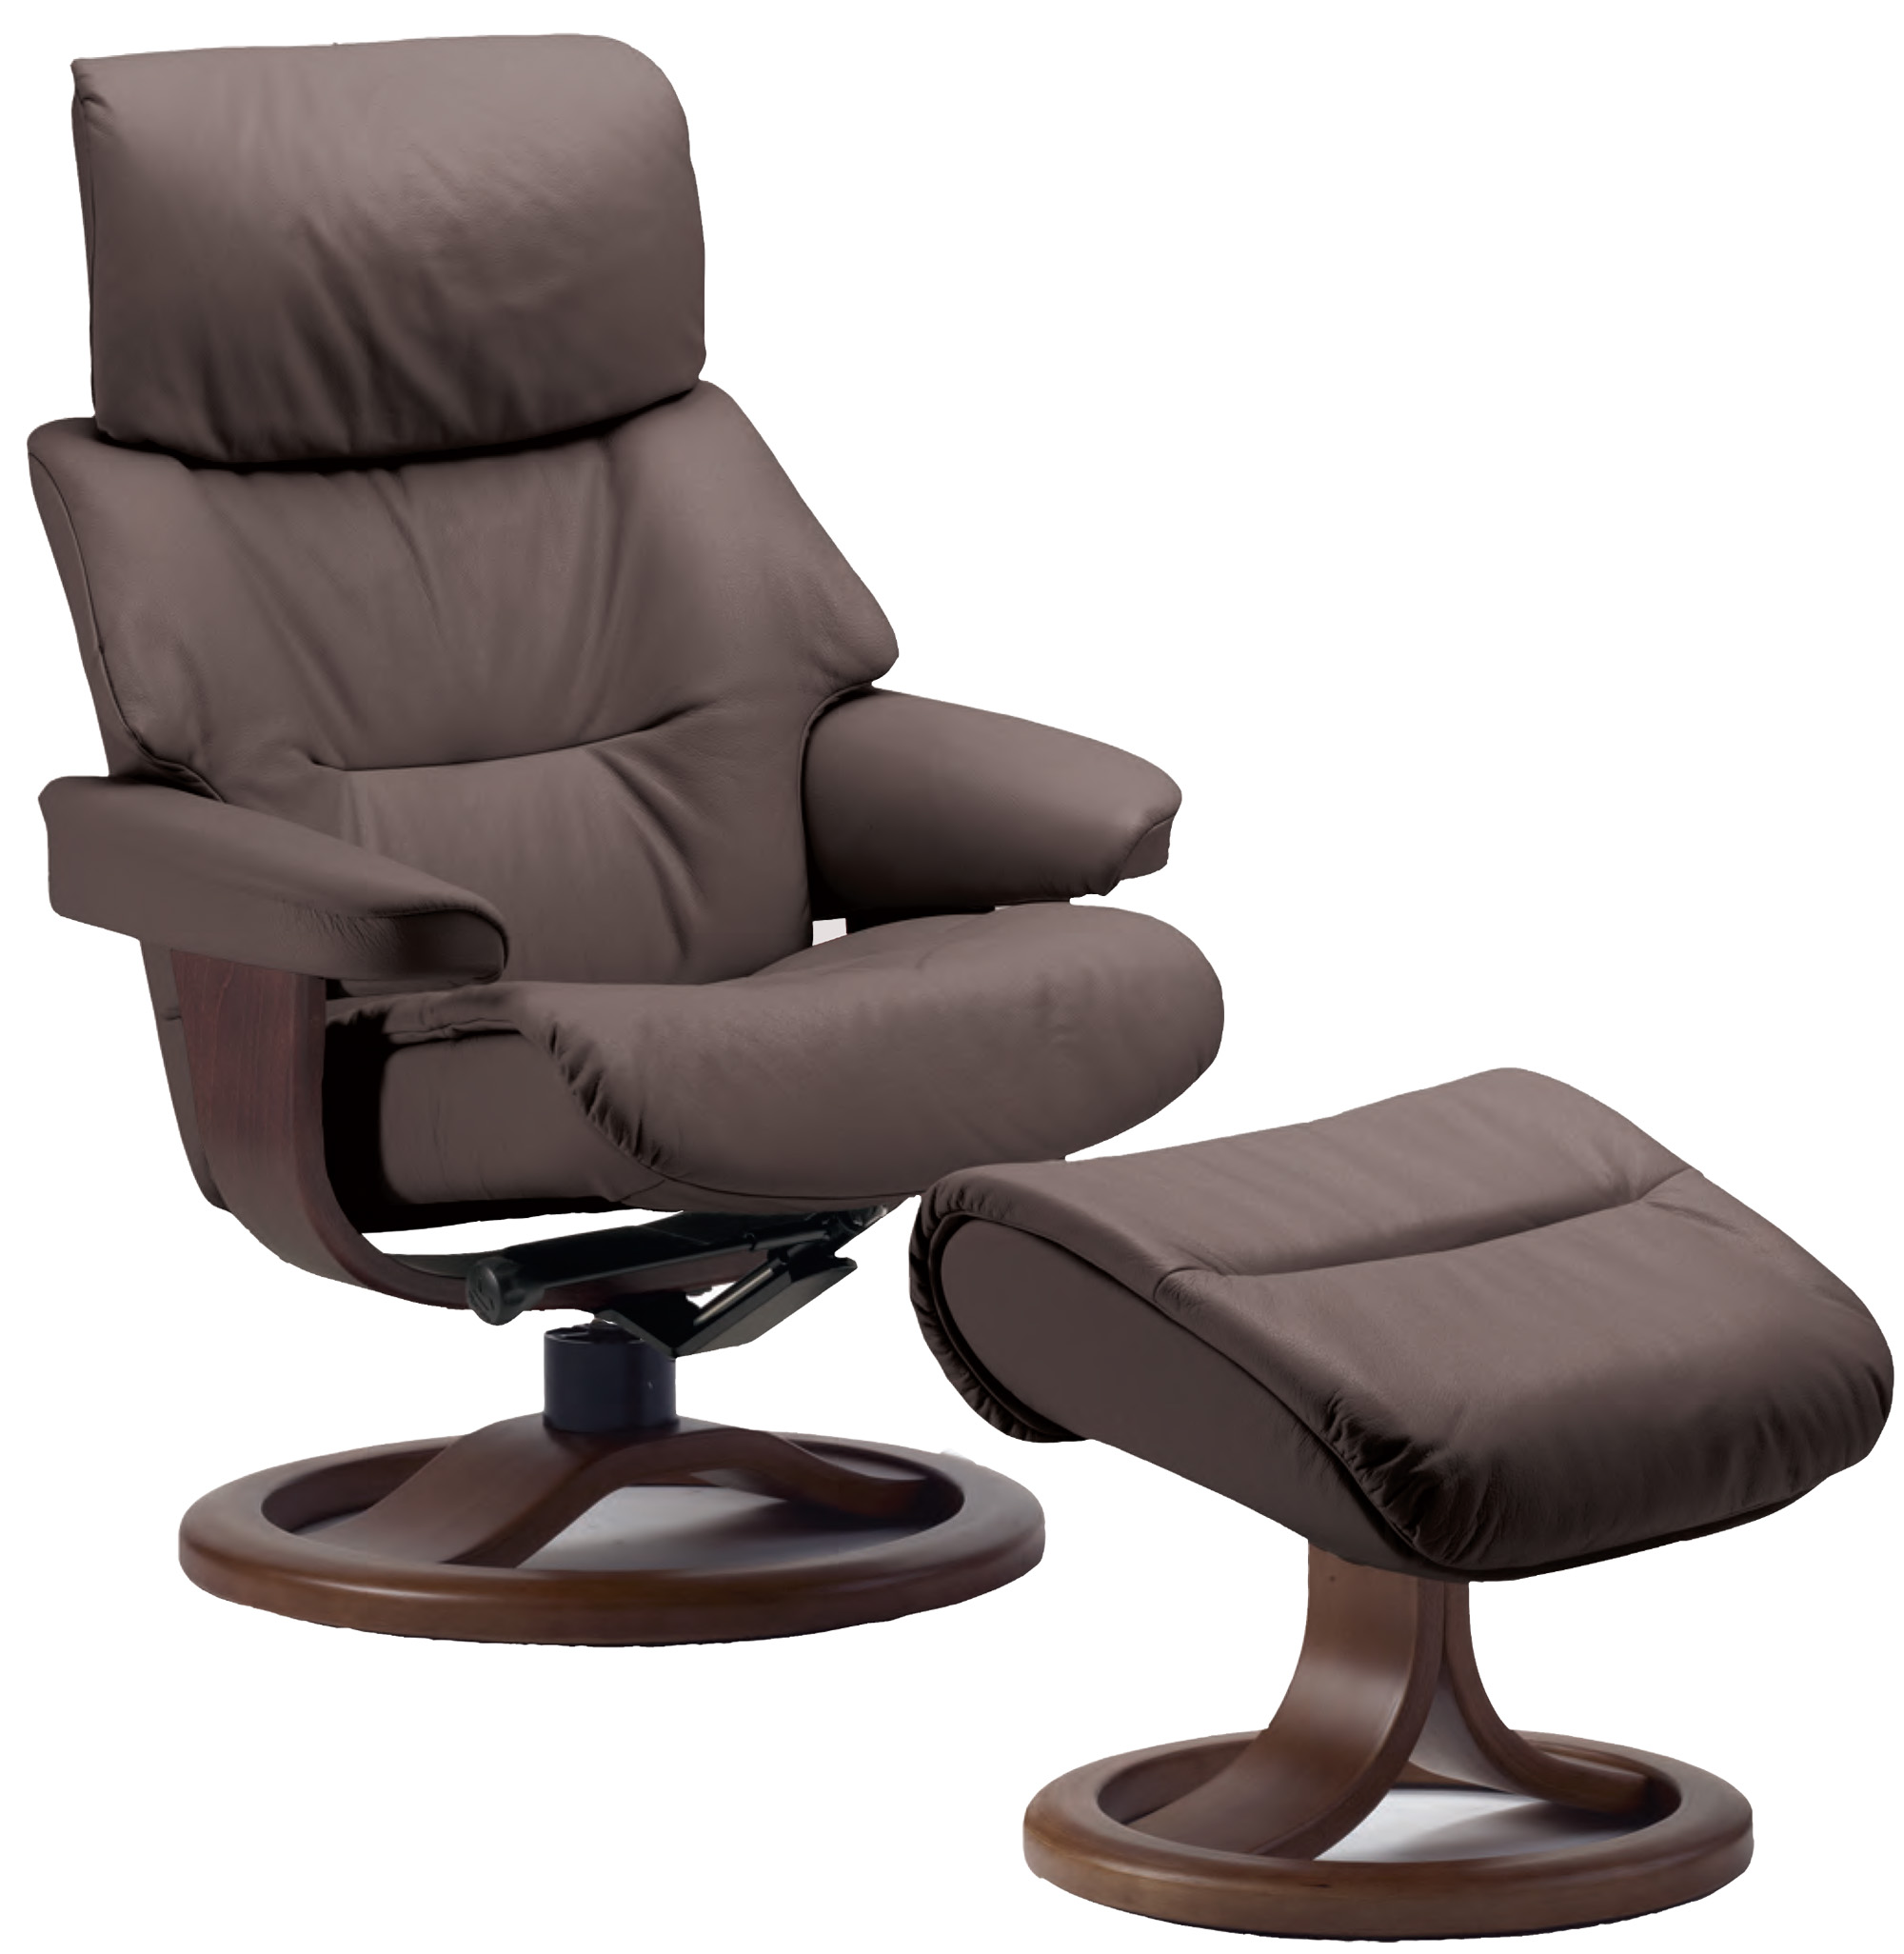 swedish leather recliner chairs how to clean a chair fjords grip ergonomic 43 ottoman